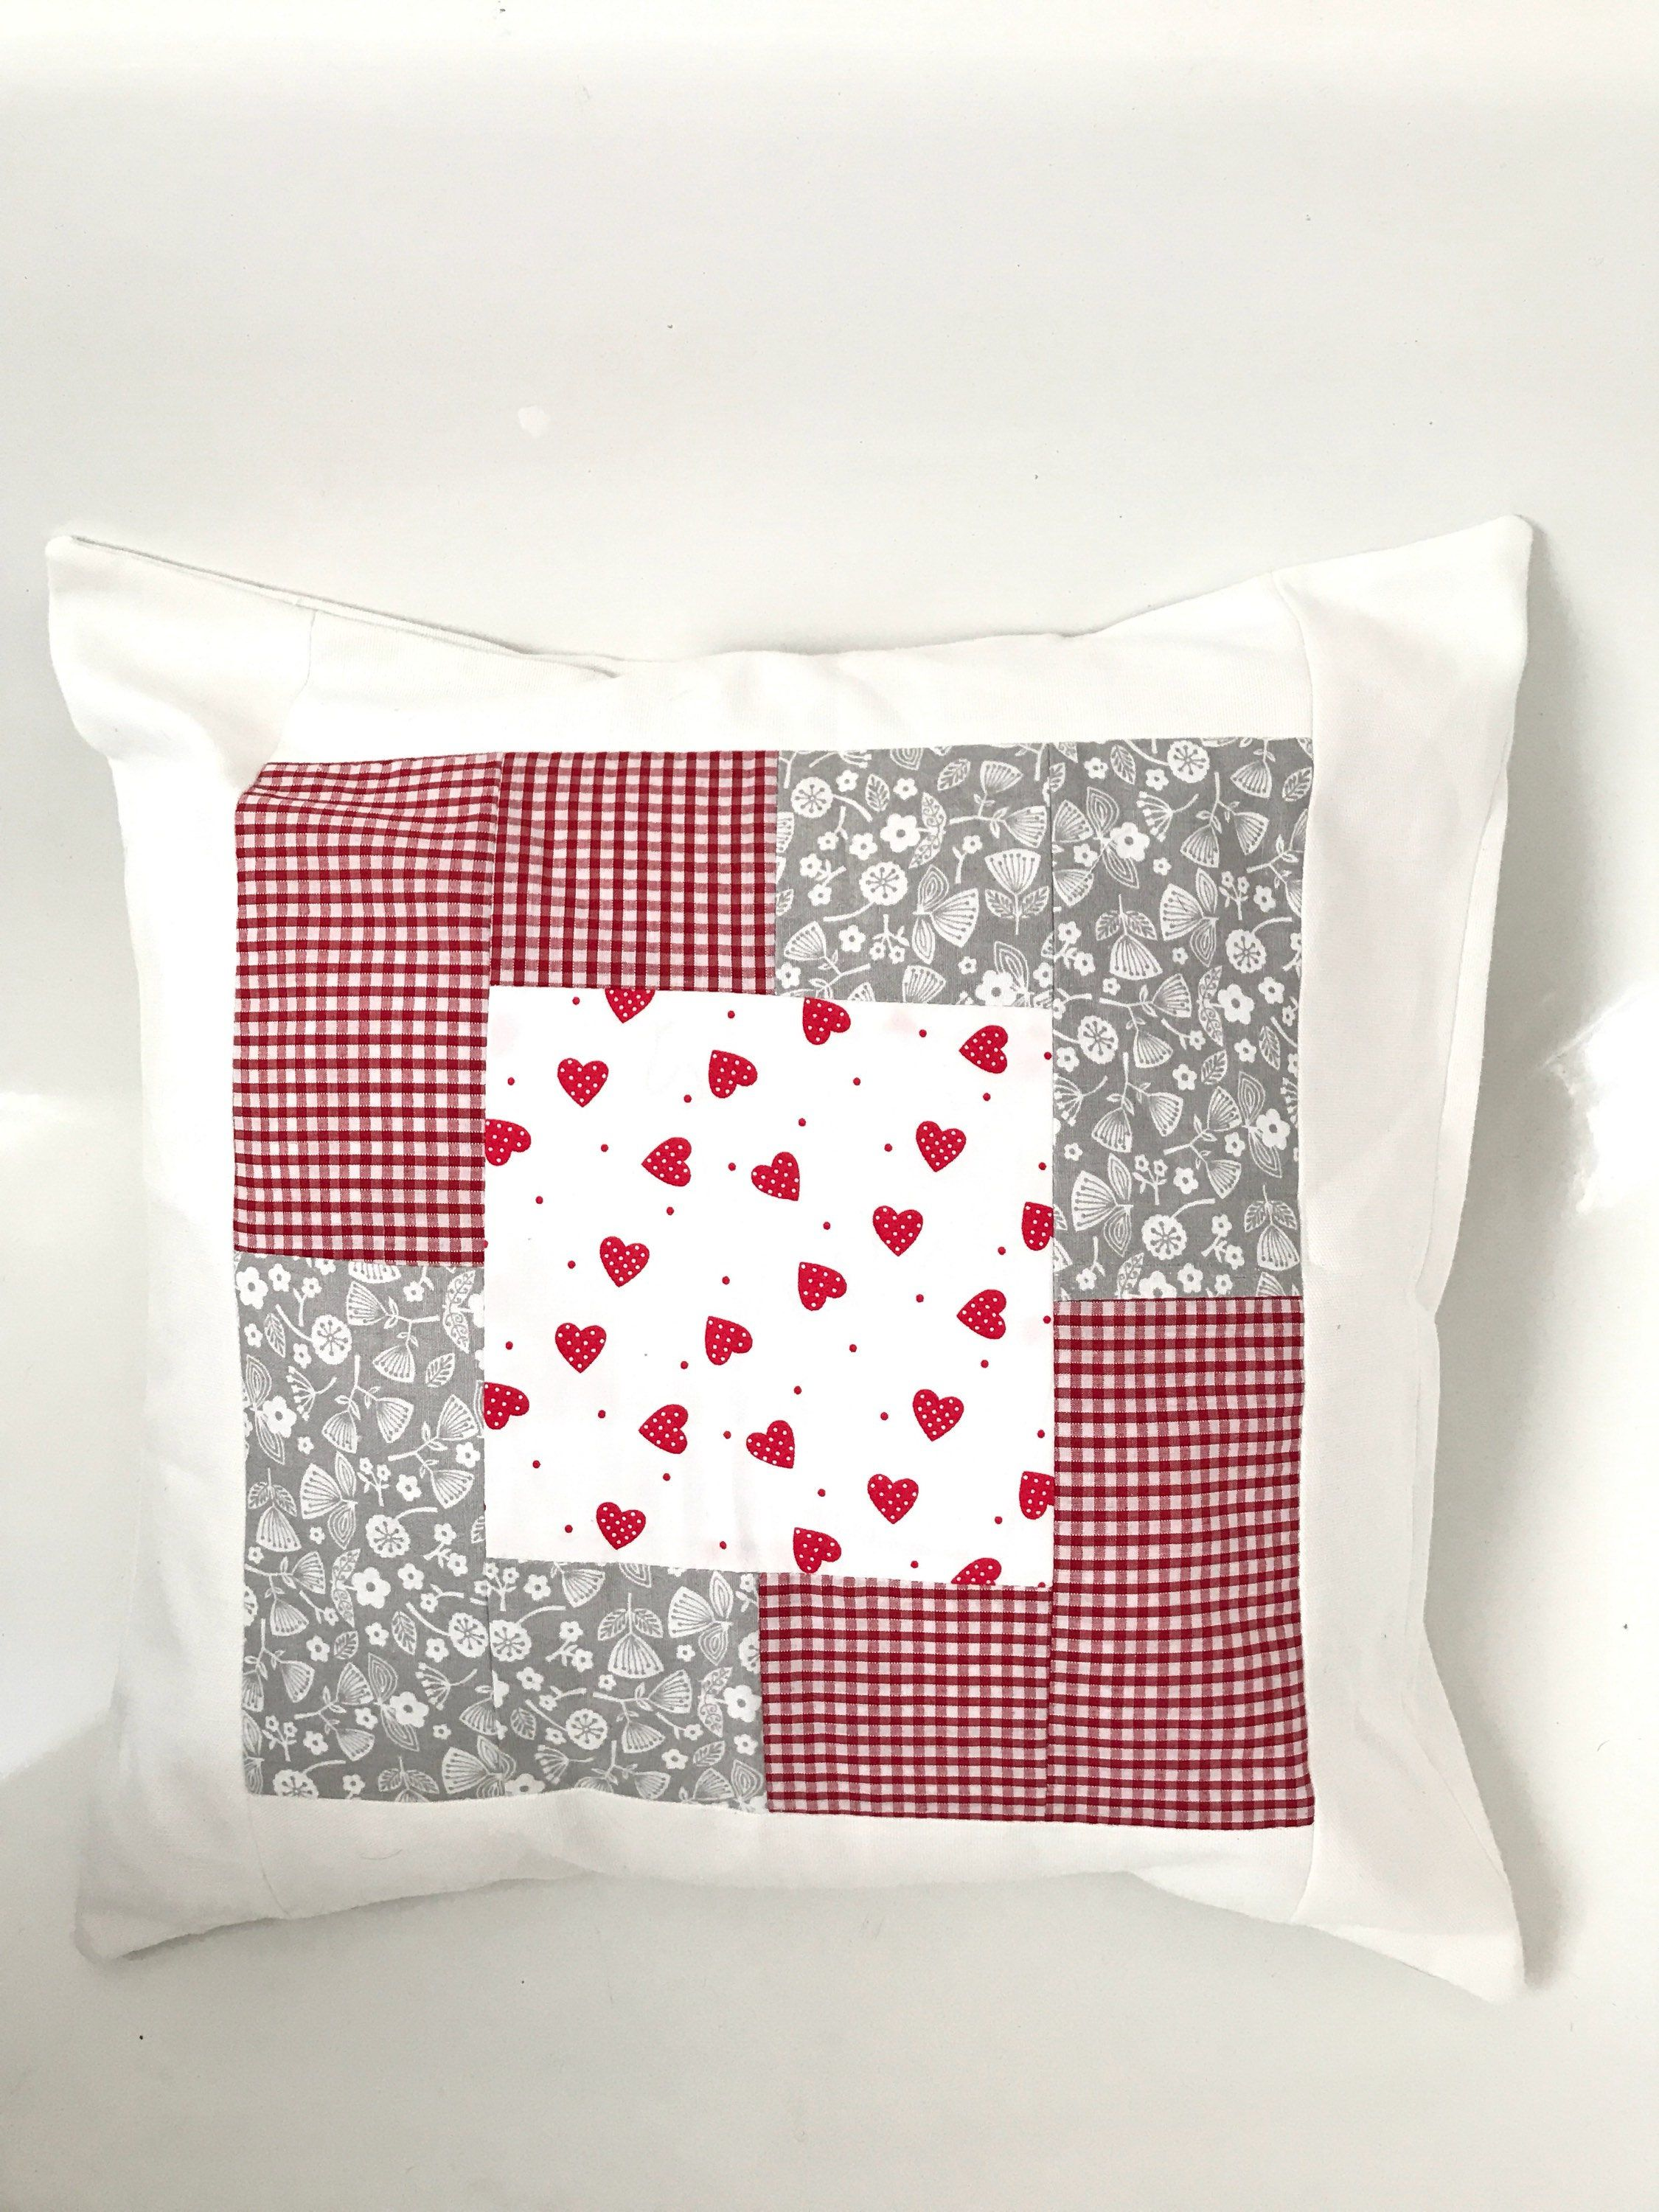 Boho pillow patchwork scatter cushion vintage look red gingham